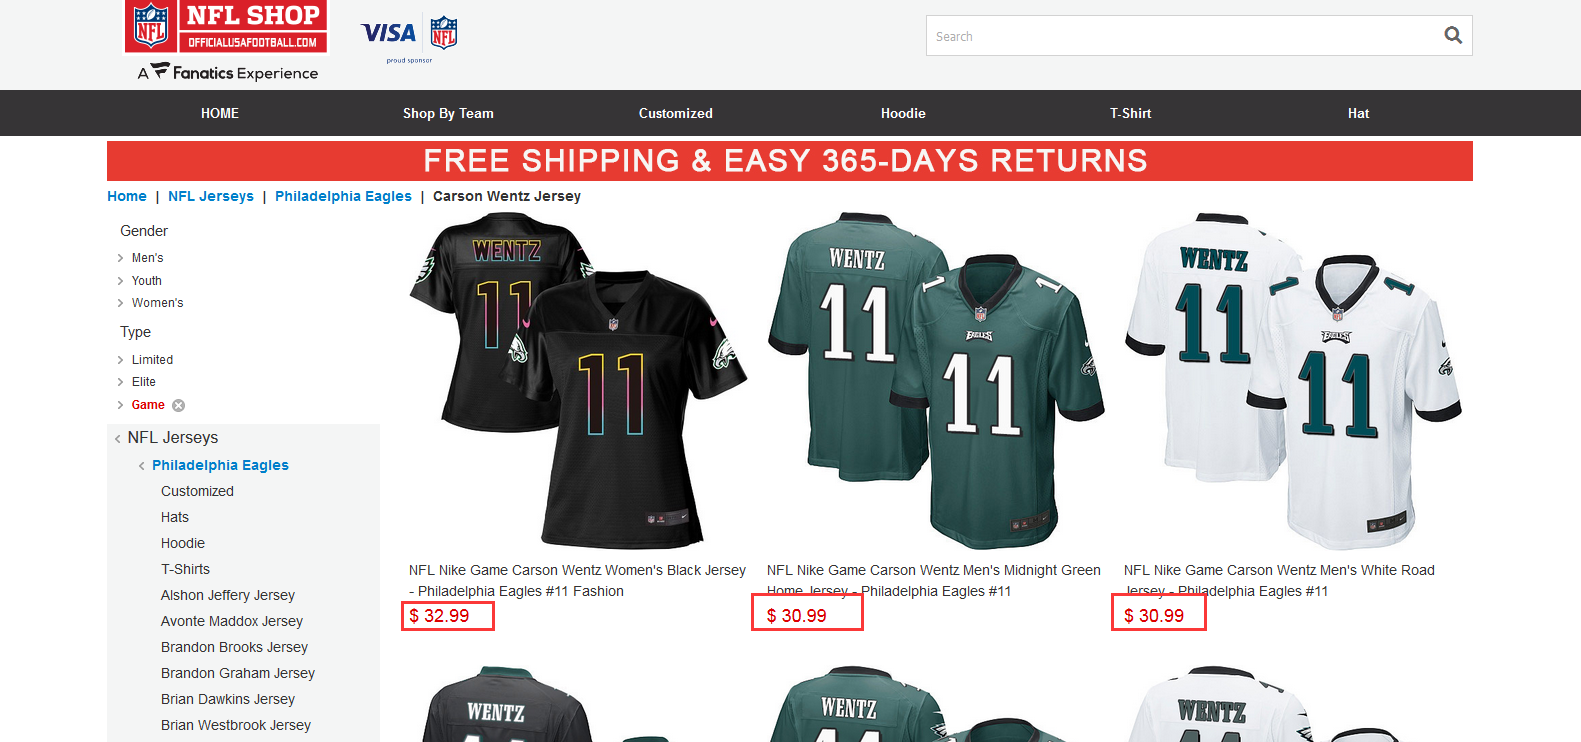 What is a good website to buy sports jerseys  - Quora aa2ee3c80